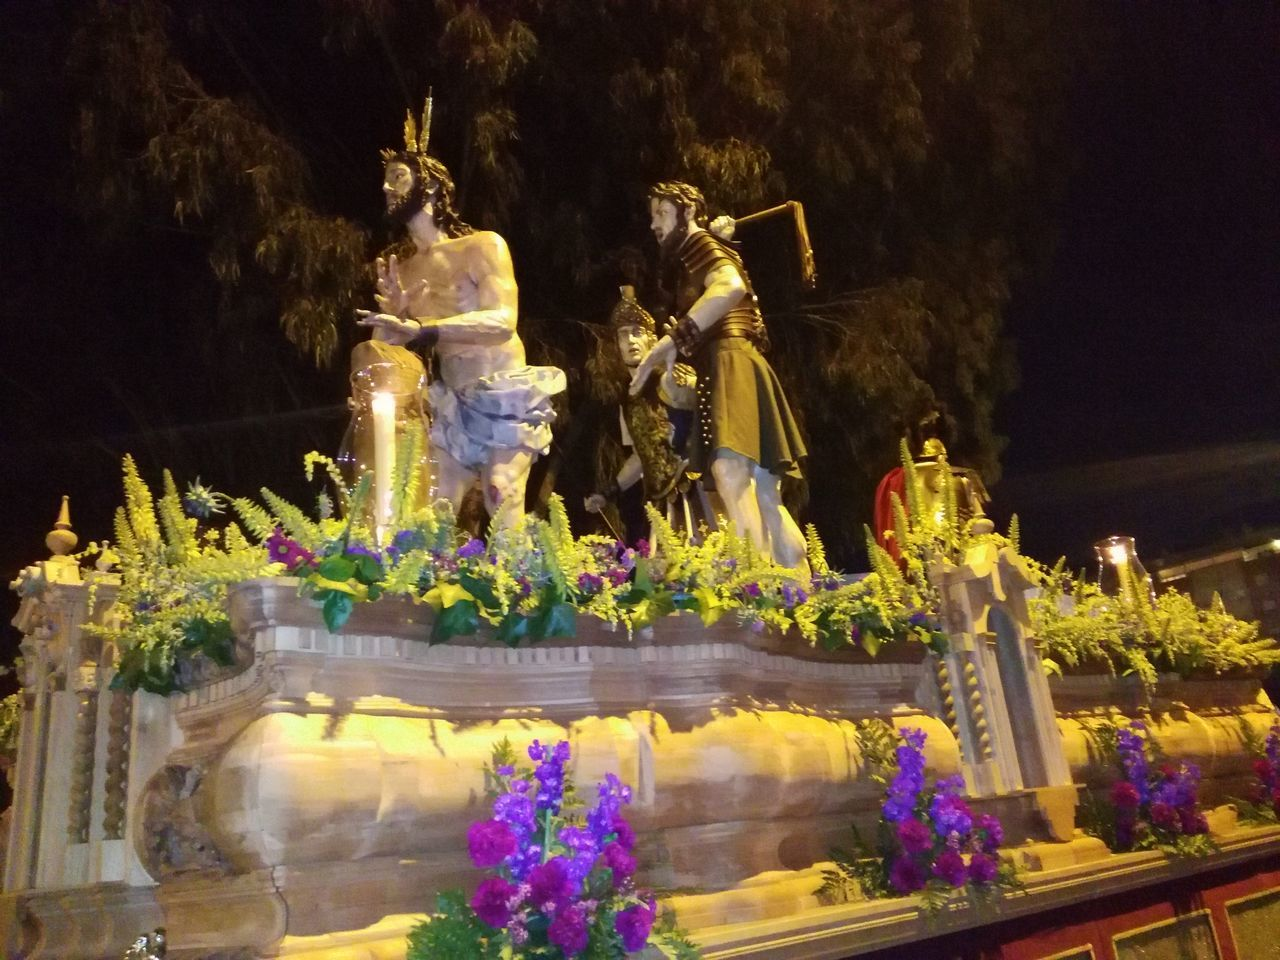 statue, sculpture, human representation, male likeness, art and craft, creativity, fountain, flower, night, outdoors, travel destinations, water, no people, tree, sky